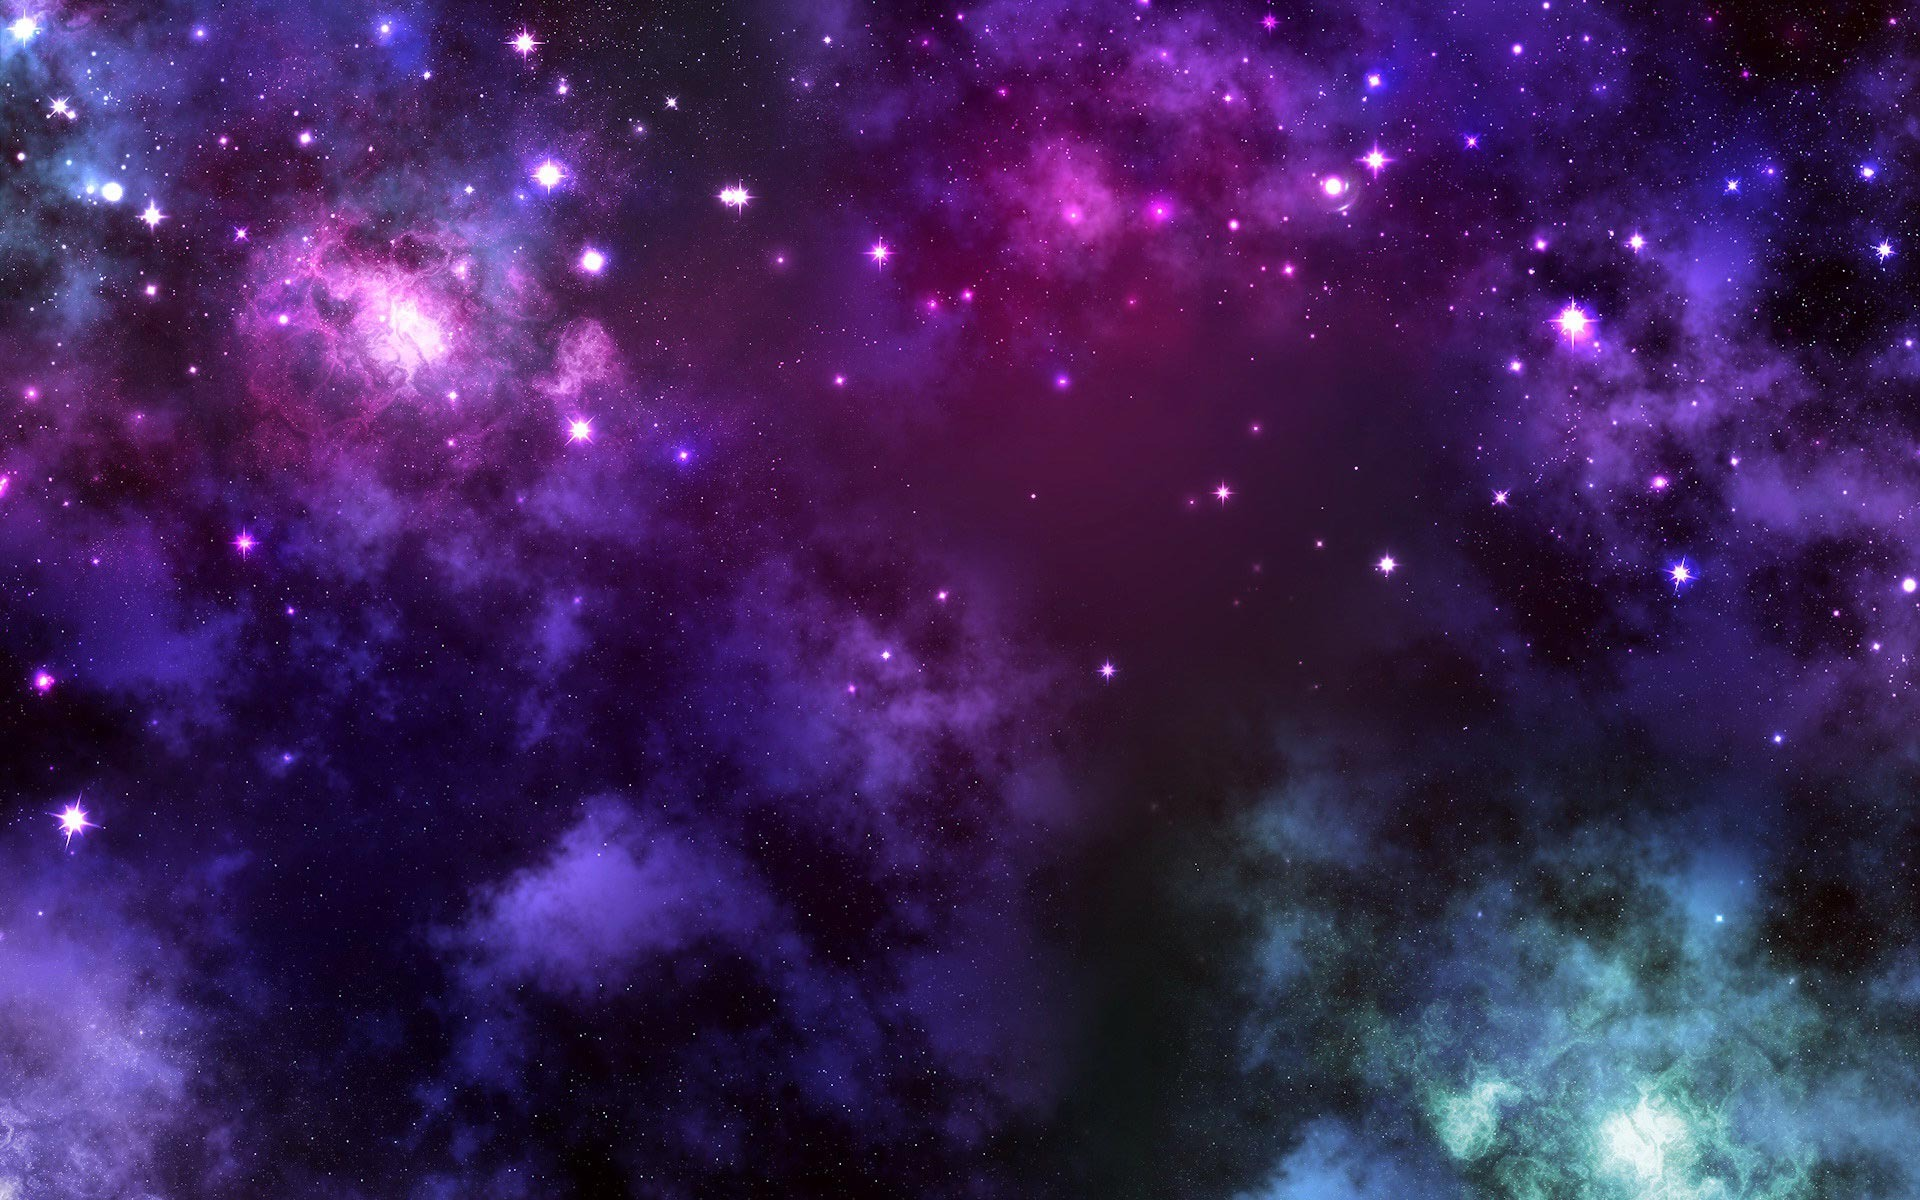 Free HD Galaxy Backgrounds Tumblr - wallpaper.wiki